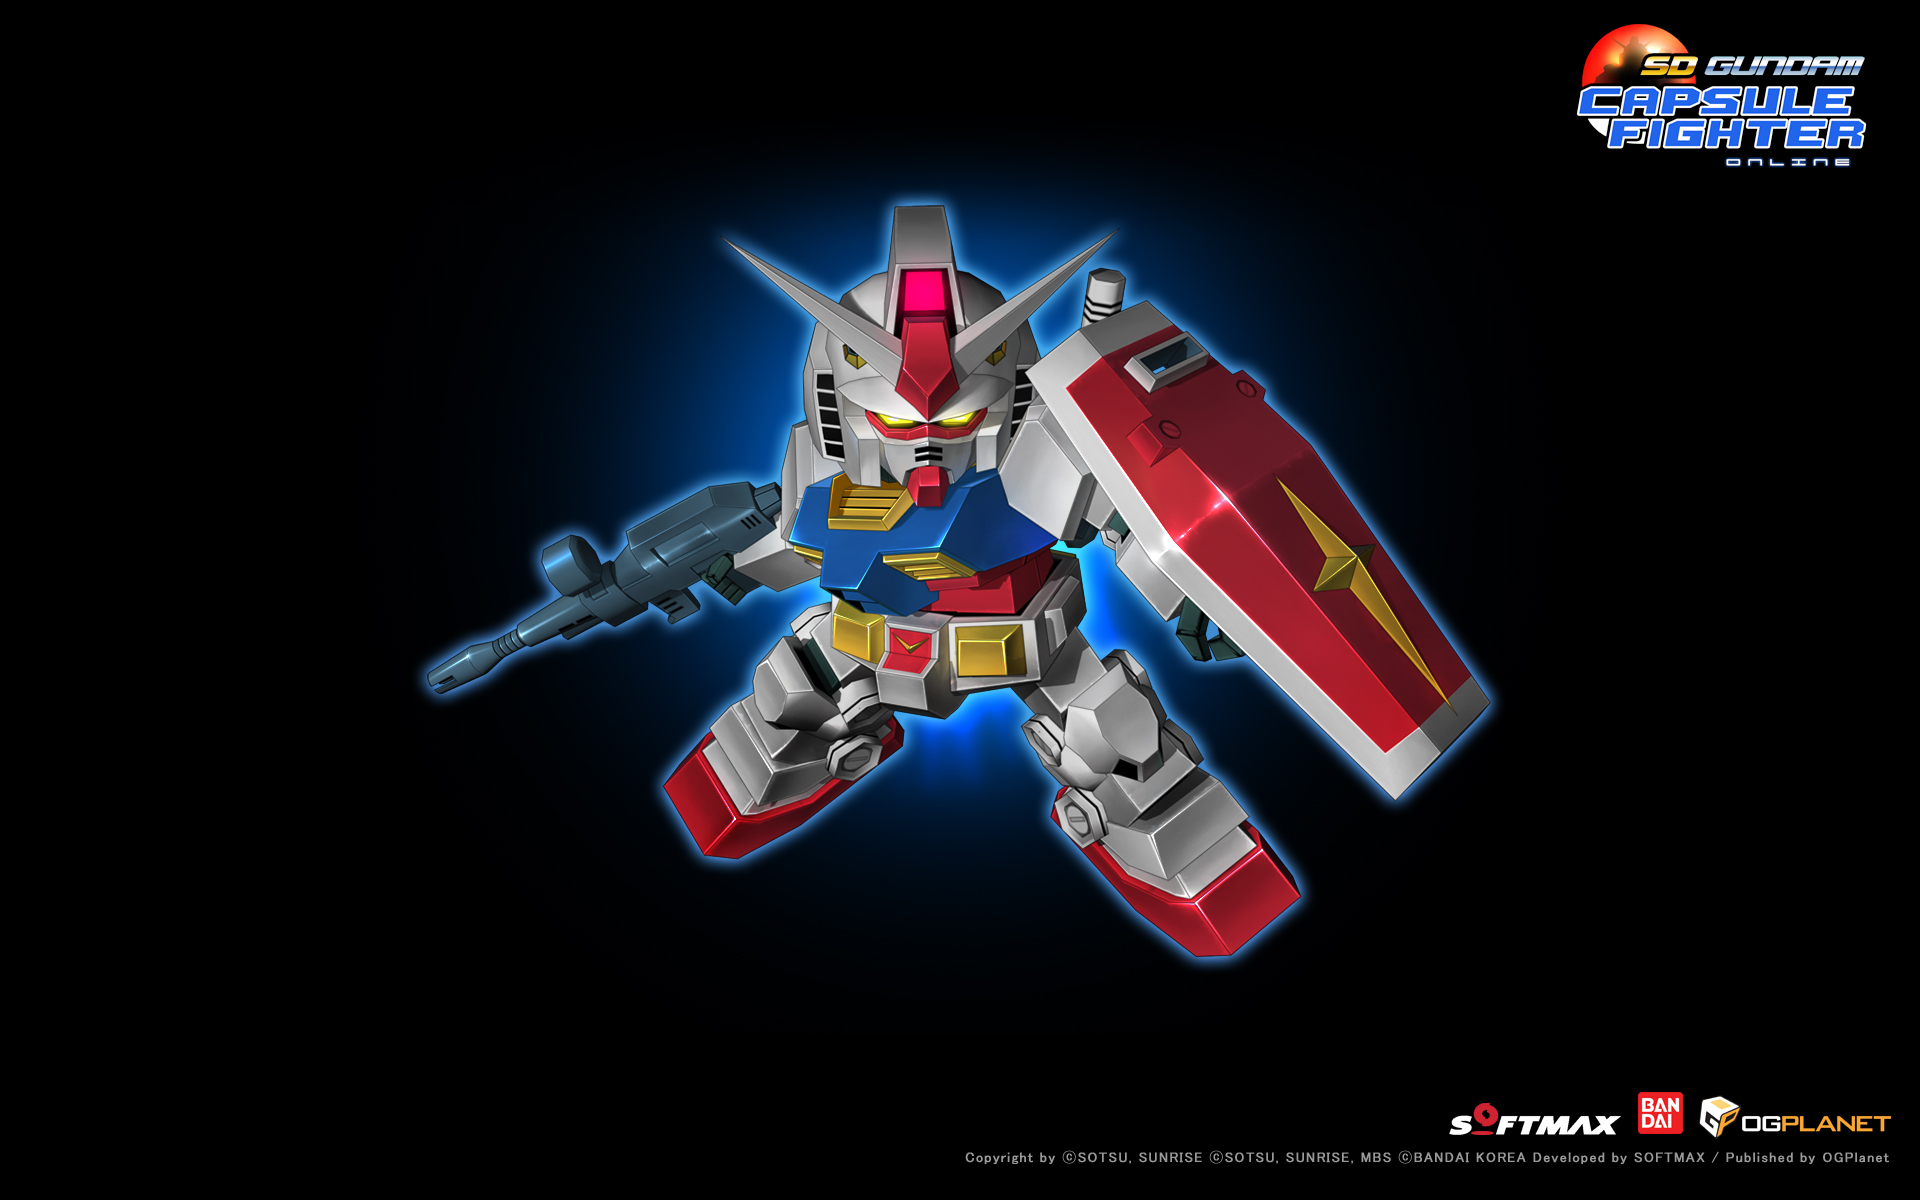 SD Gundam Capsule Fighter wallpaper 1   MMORPG Photo   MMOsitecom 1920x1200